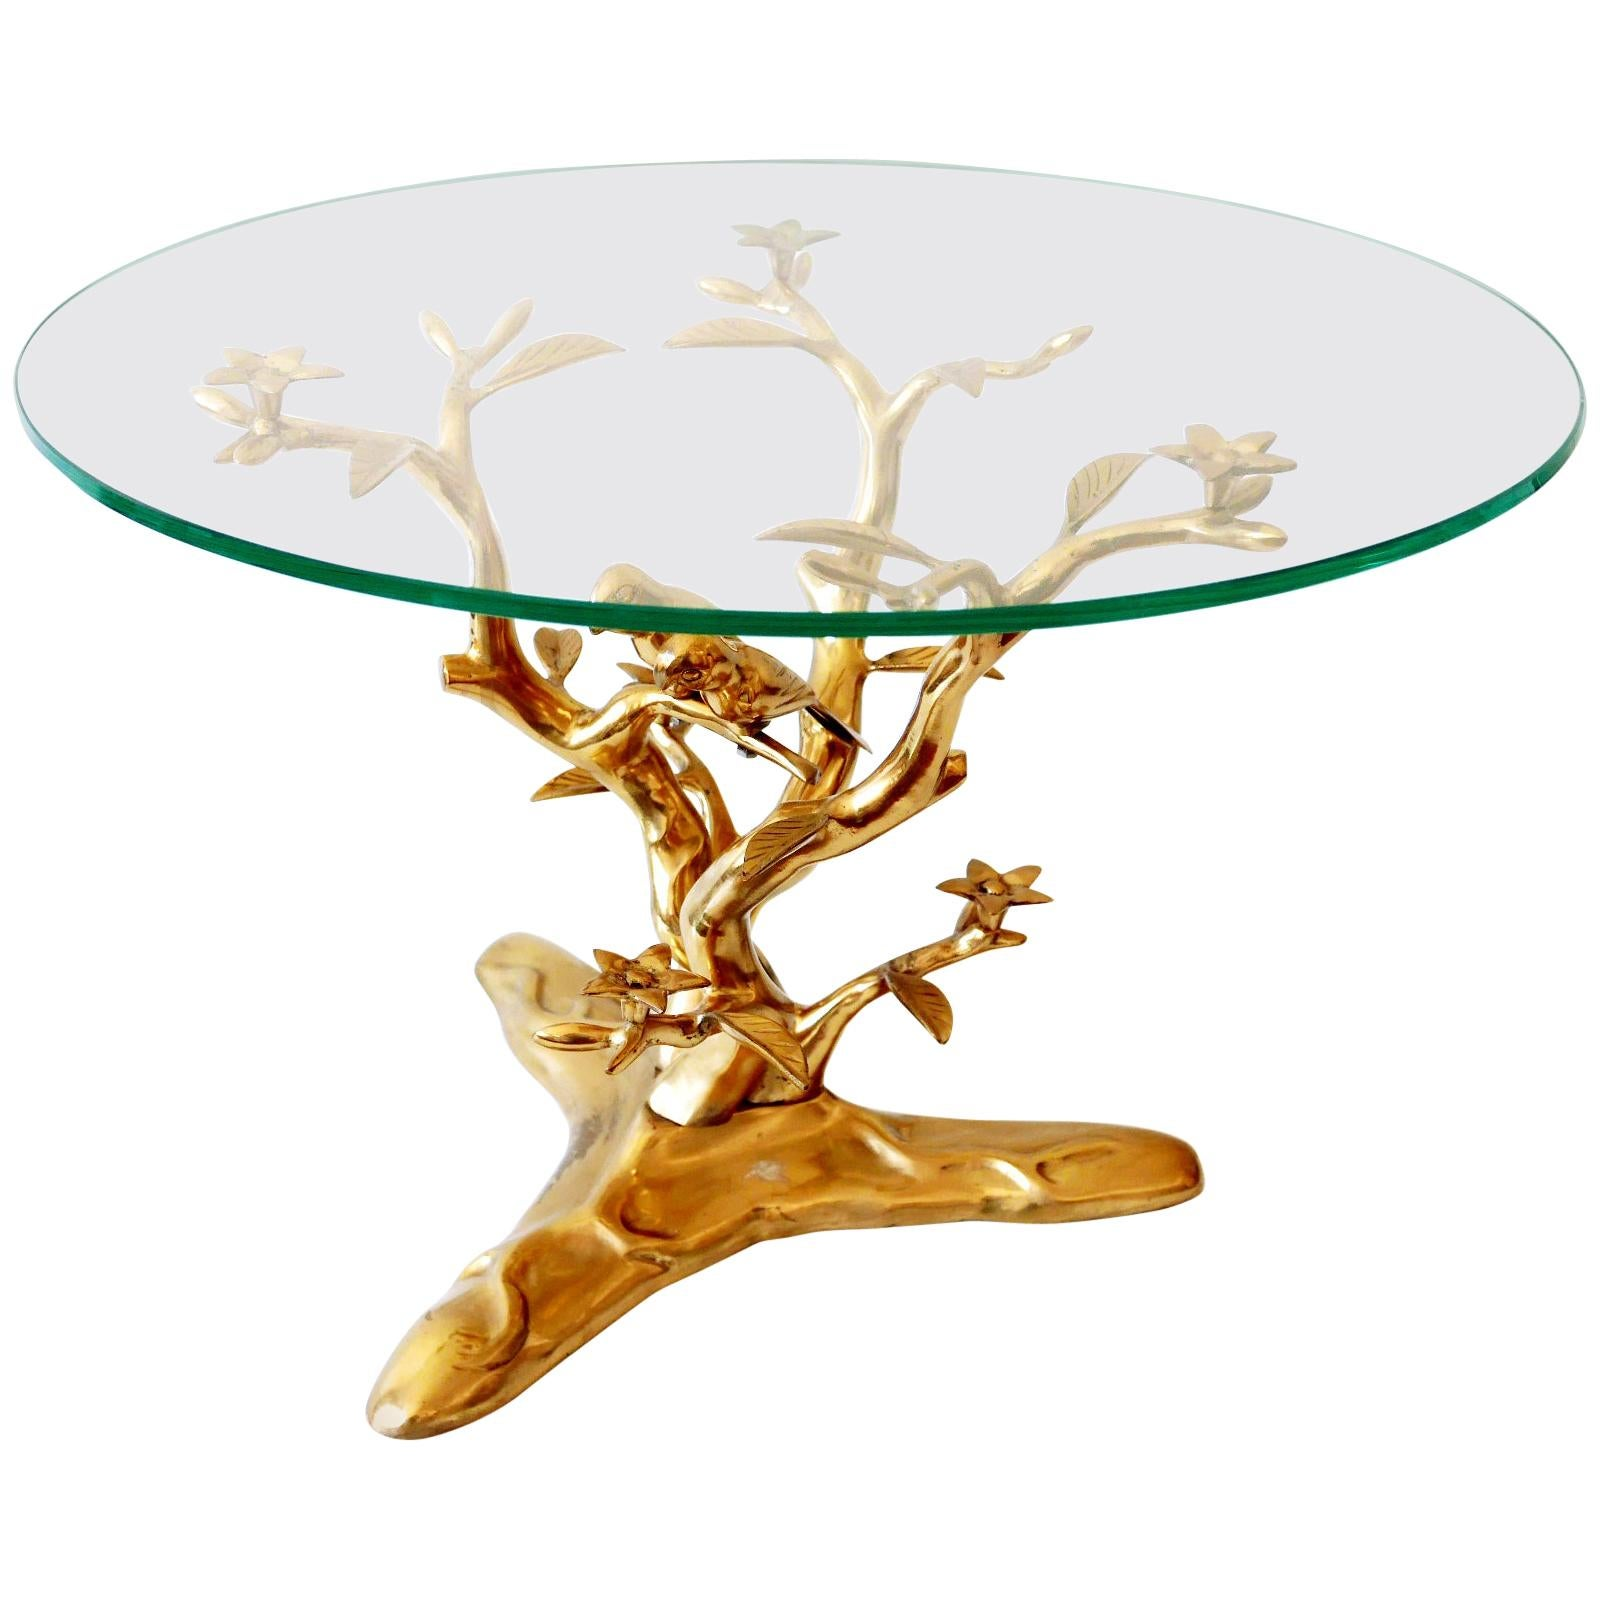 Sculptural Mid-Century Modern Brass Coffee Table by Willy Daro, Belgium, 1970s